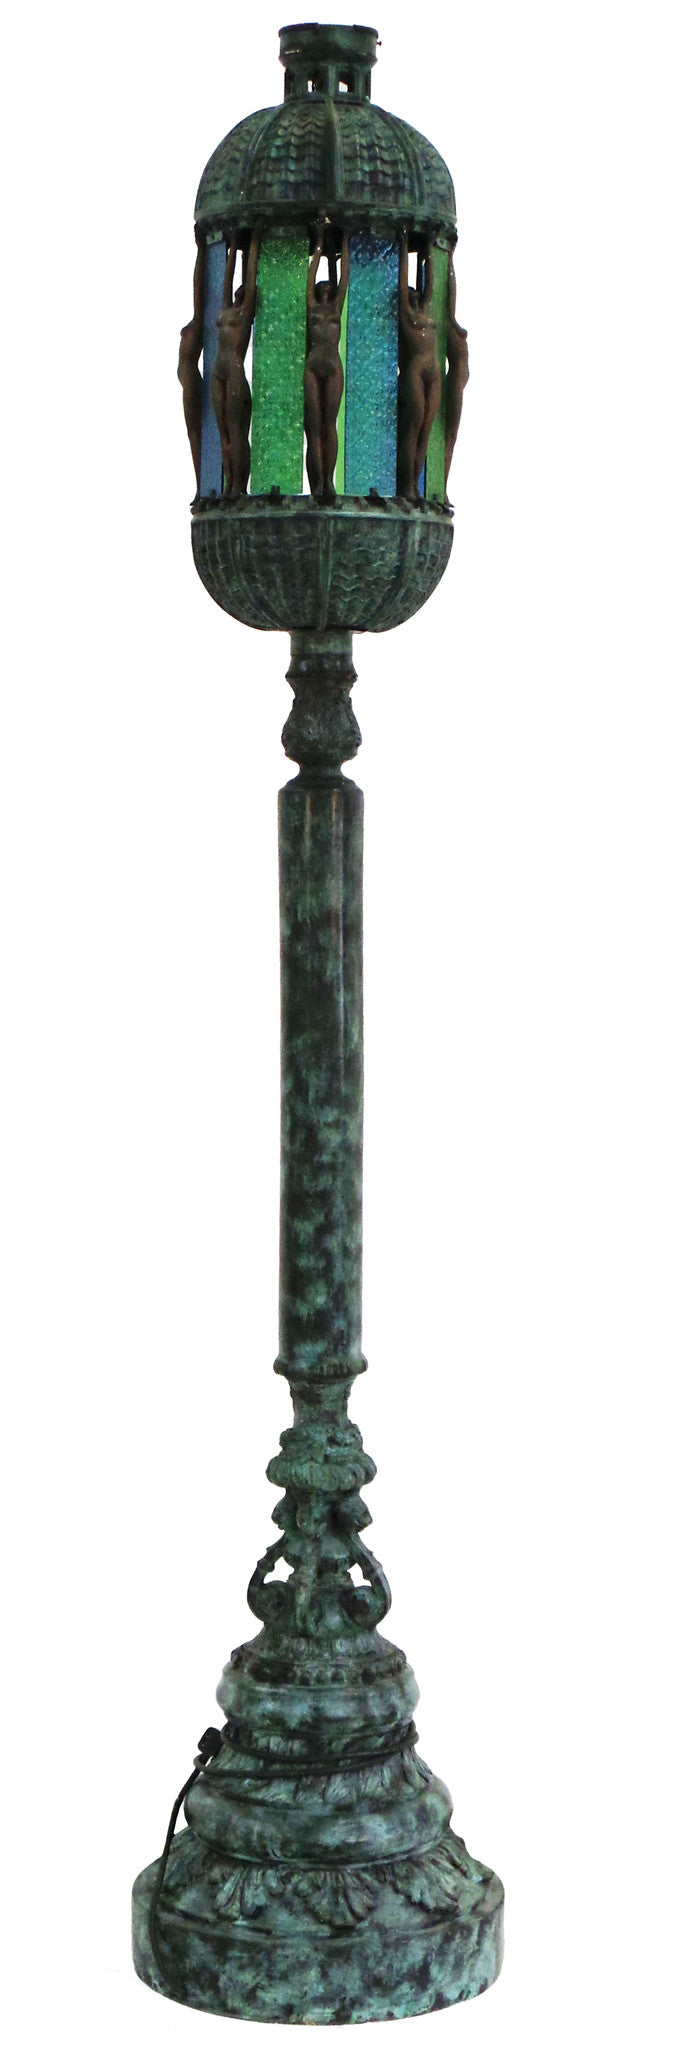 "Lamp Post with Naked Lady 20"" Wide by 89"" High"